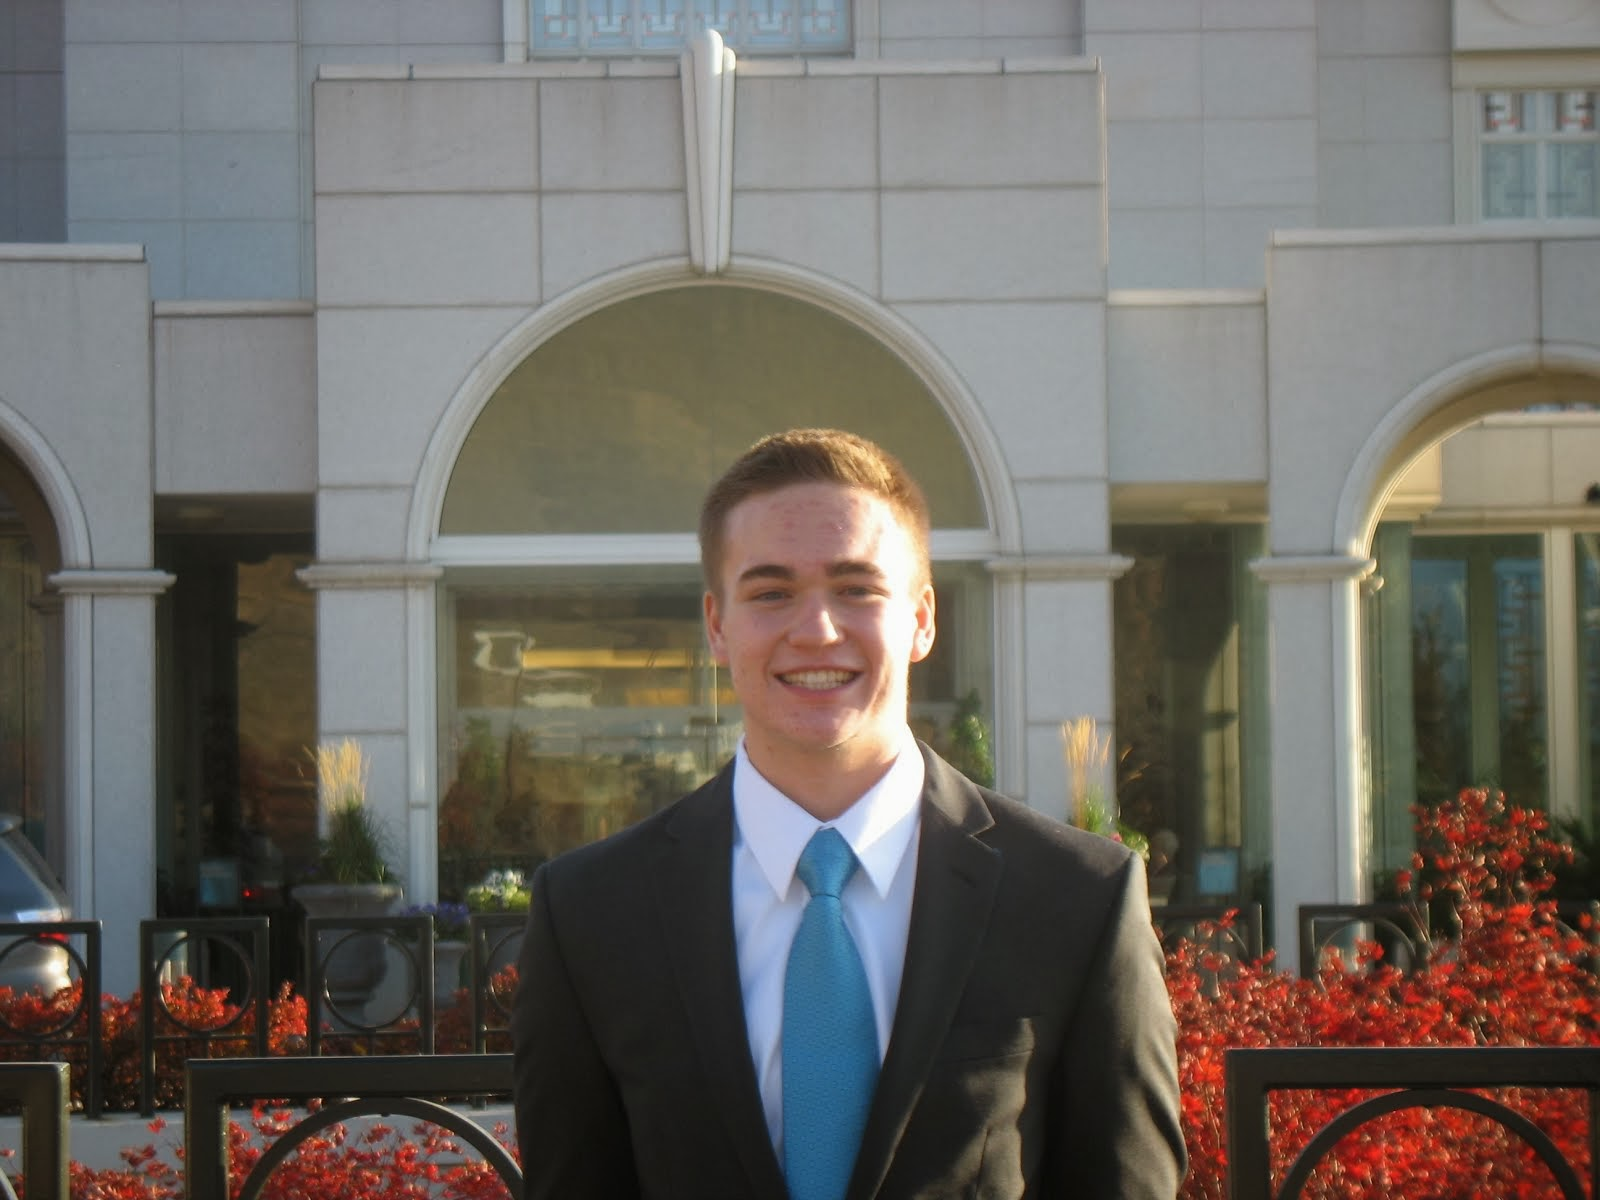 Elder Karl at the Bountiful, Utah Temple